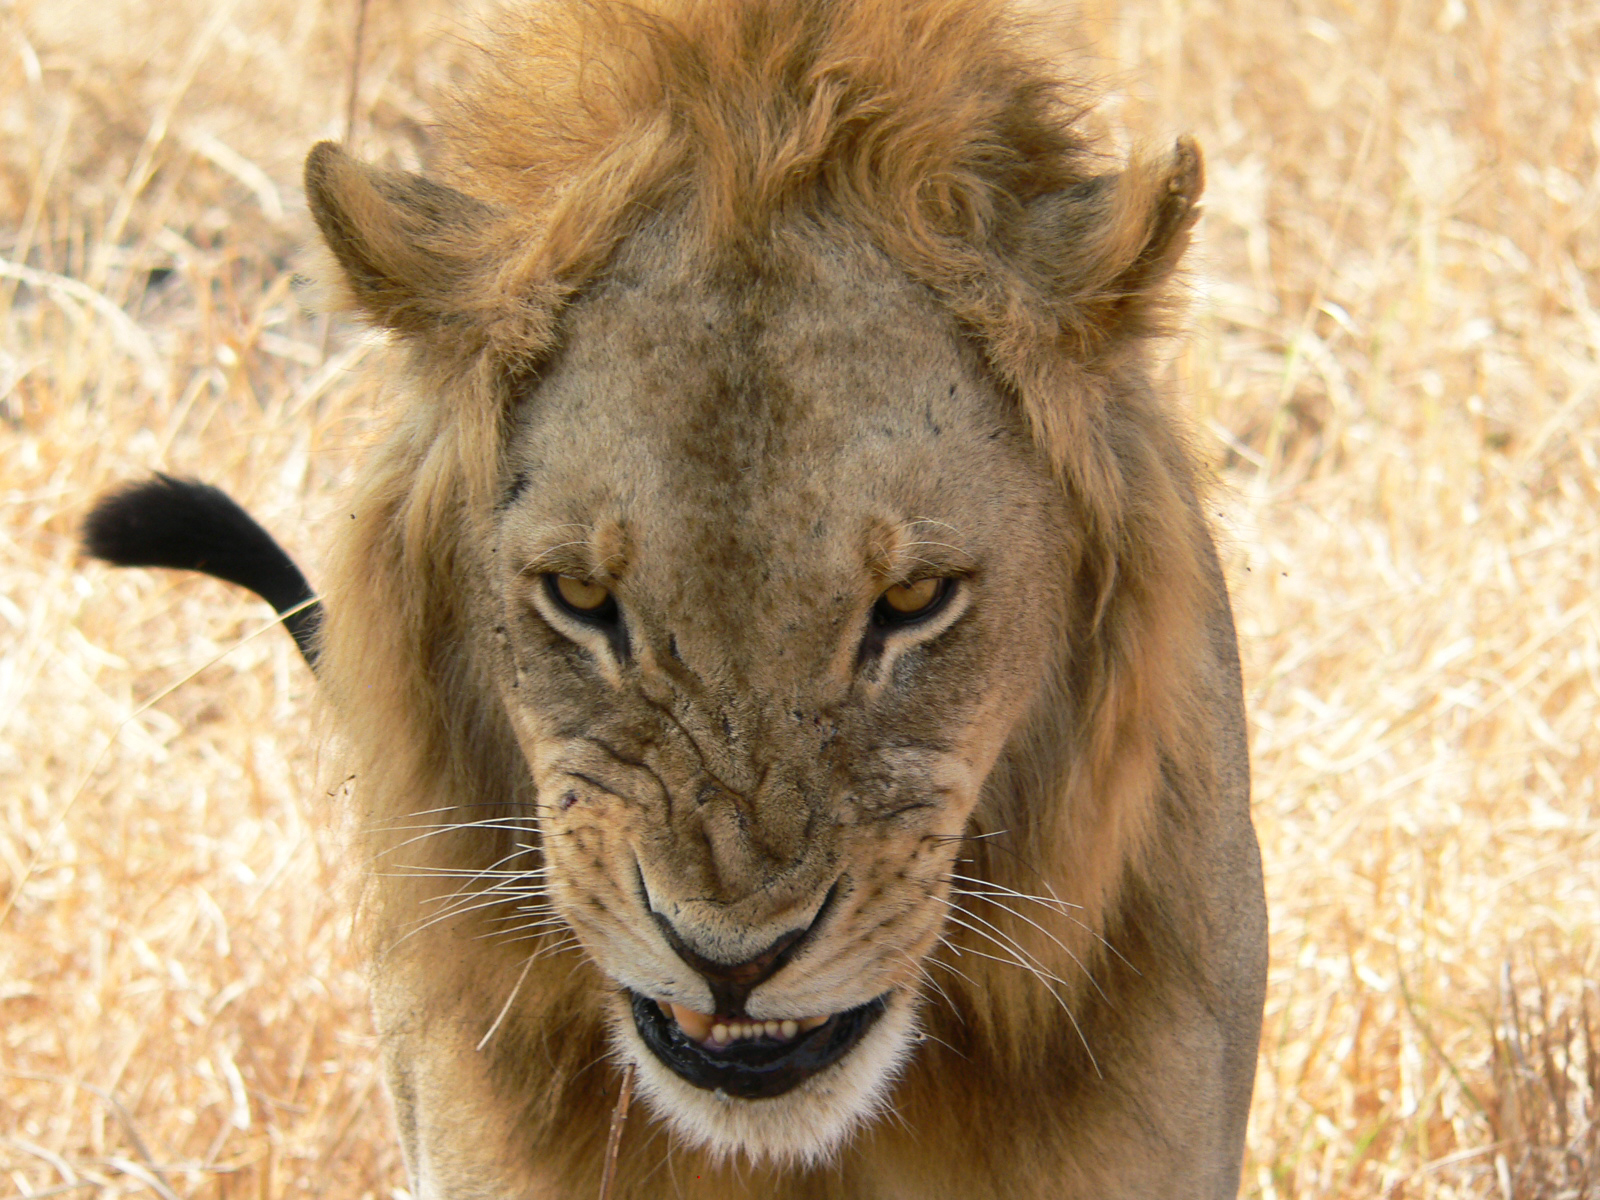 File:Snarling lion.jpg - Wikimedia Commons